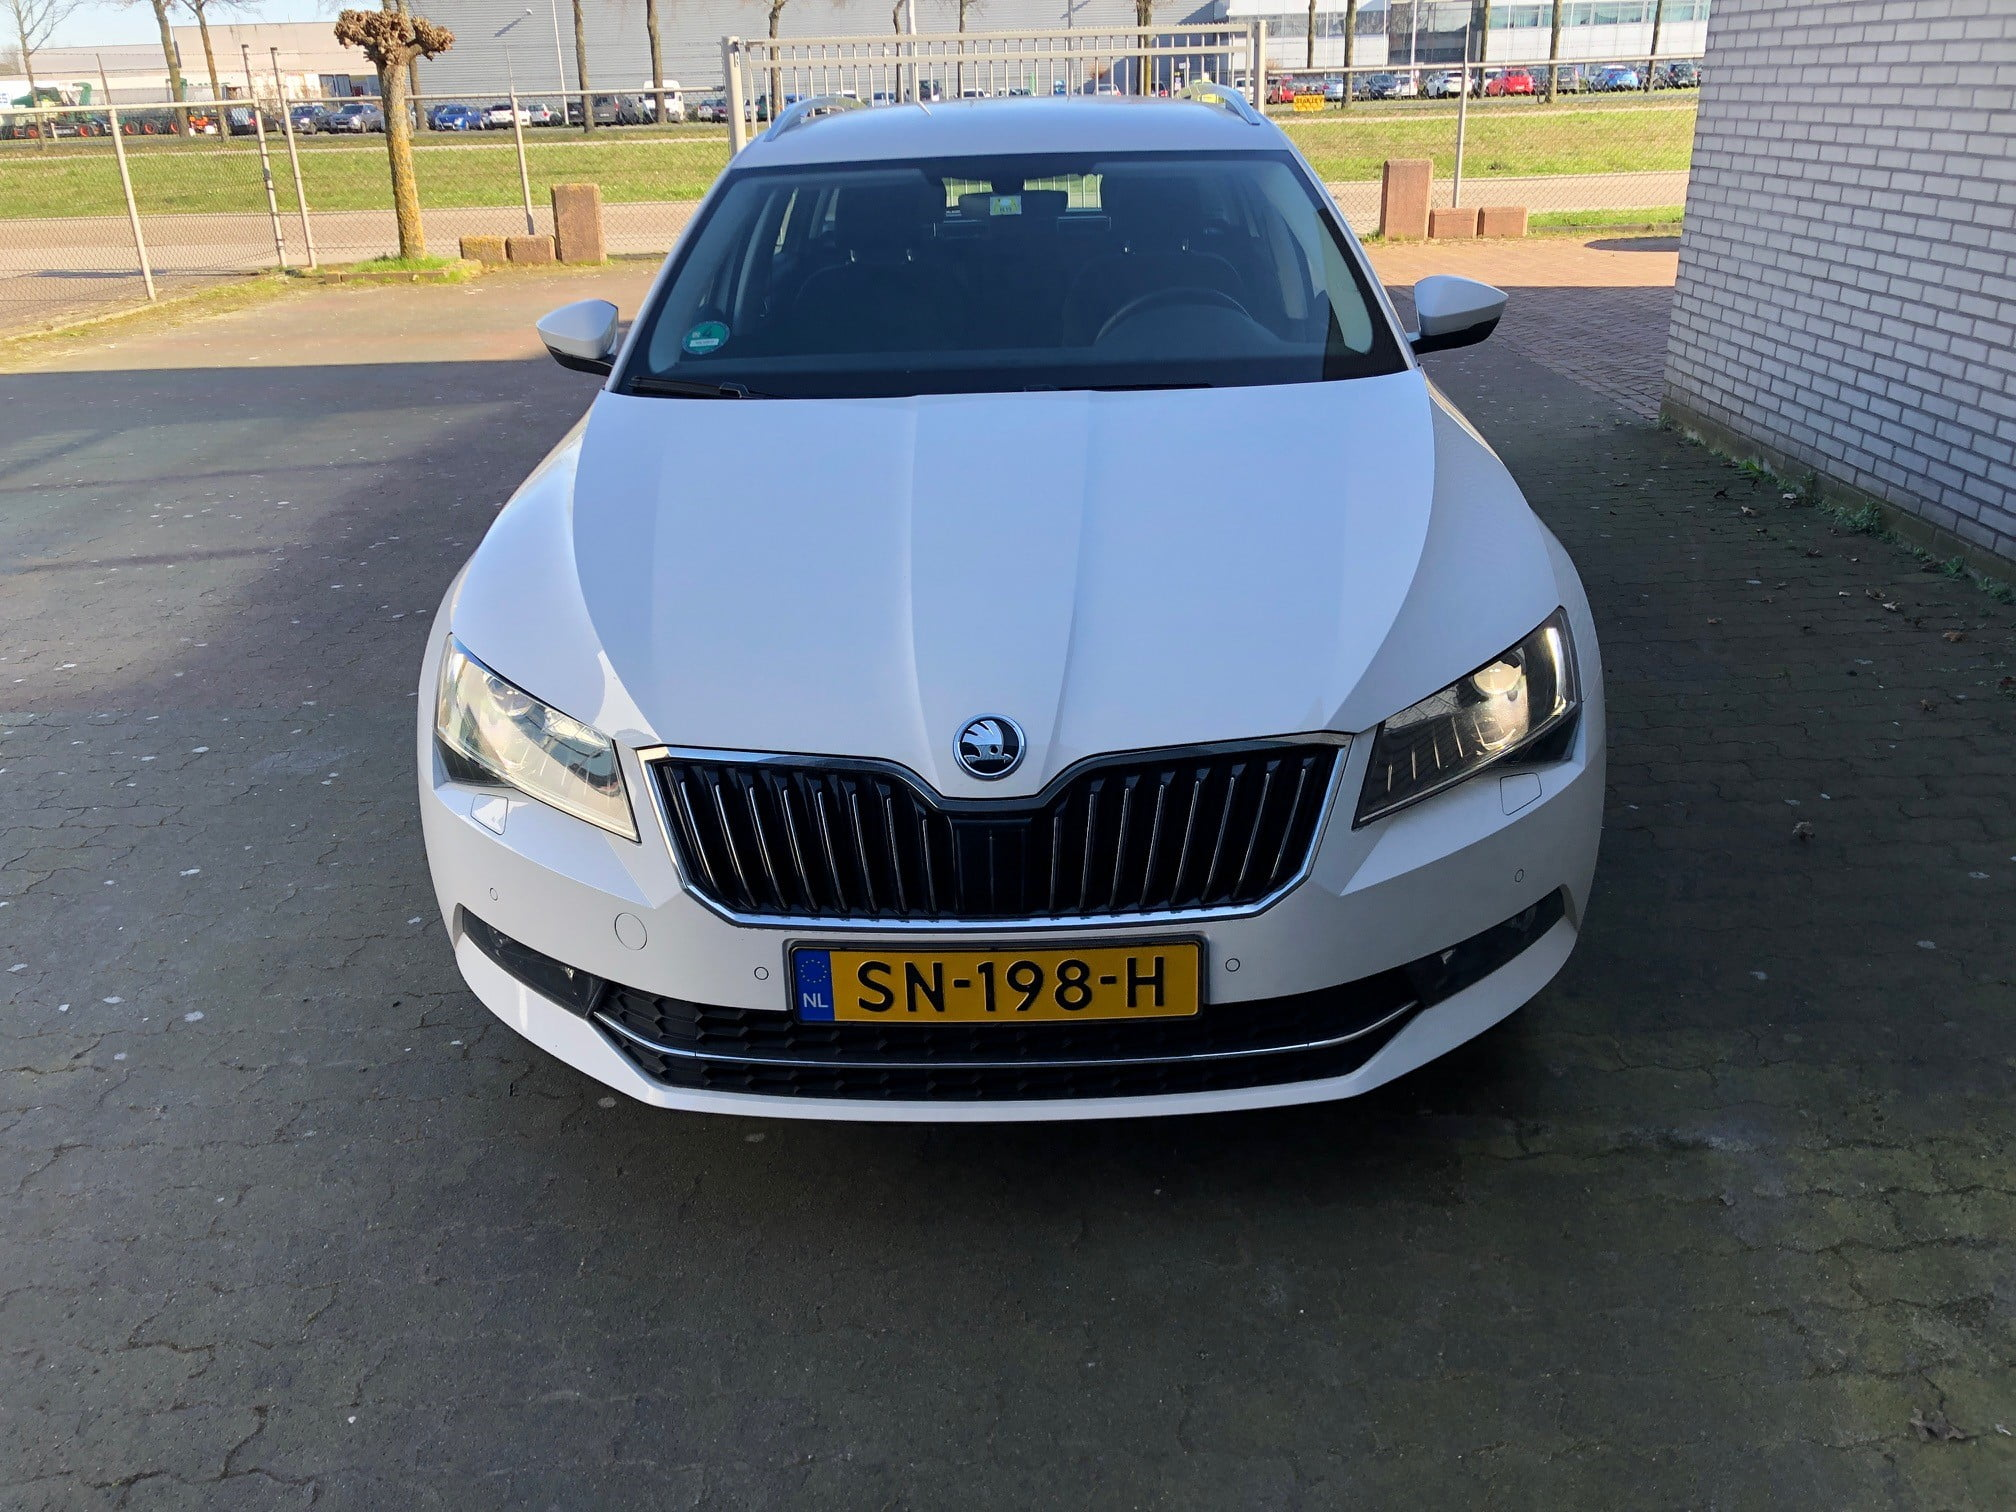 Skoda Superb Combi 1.6 TDI 120pk DSG-7 Ambition Business 5d. (12 maanden!)